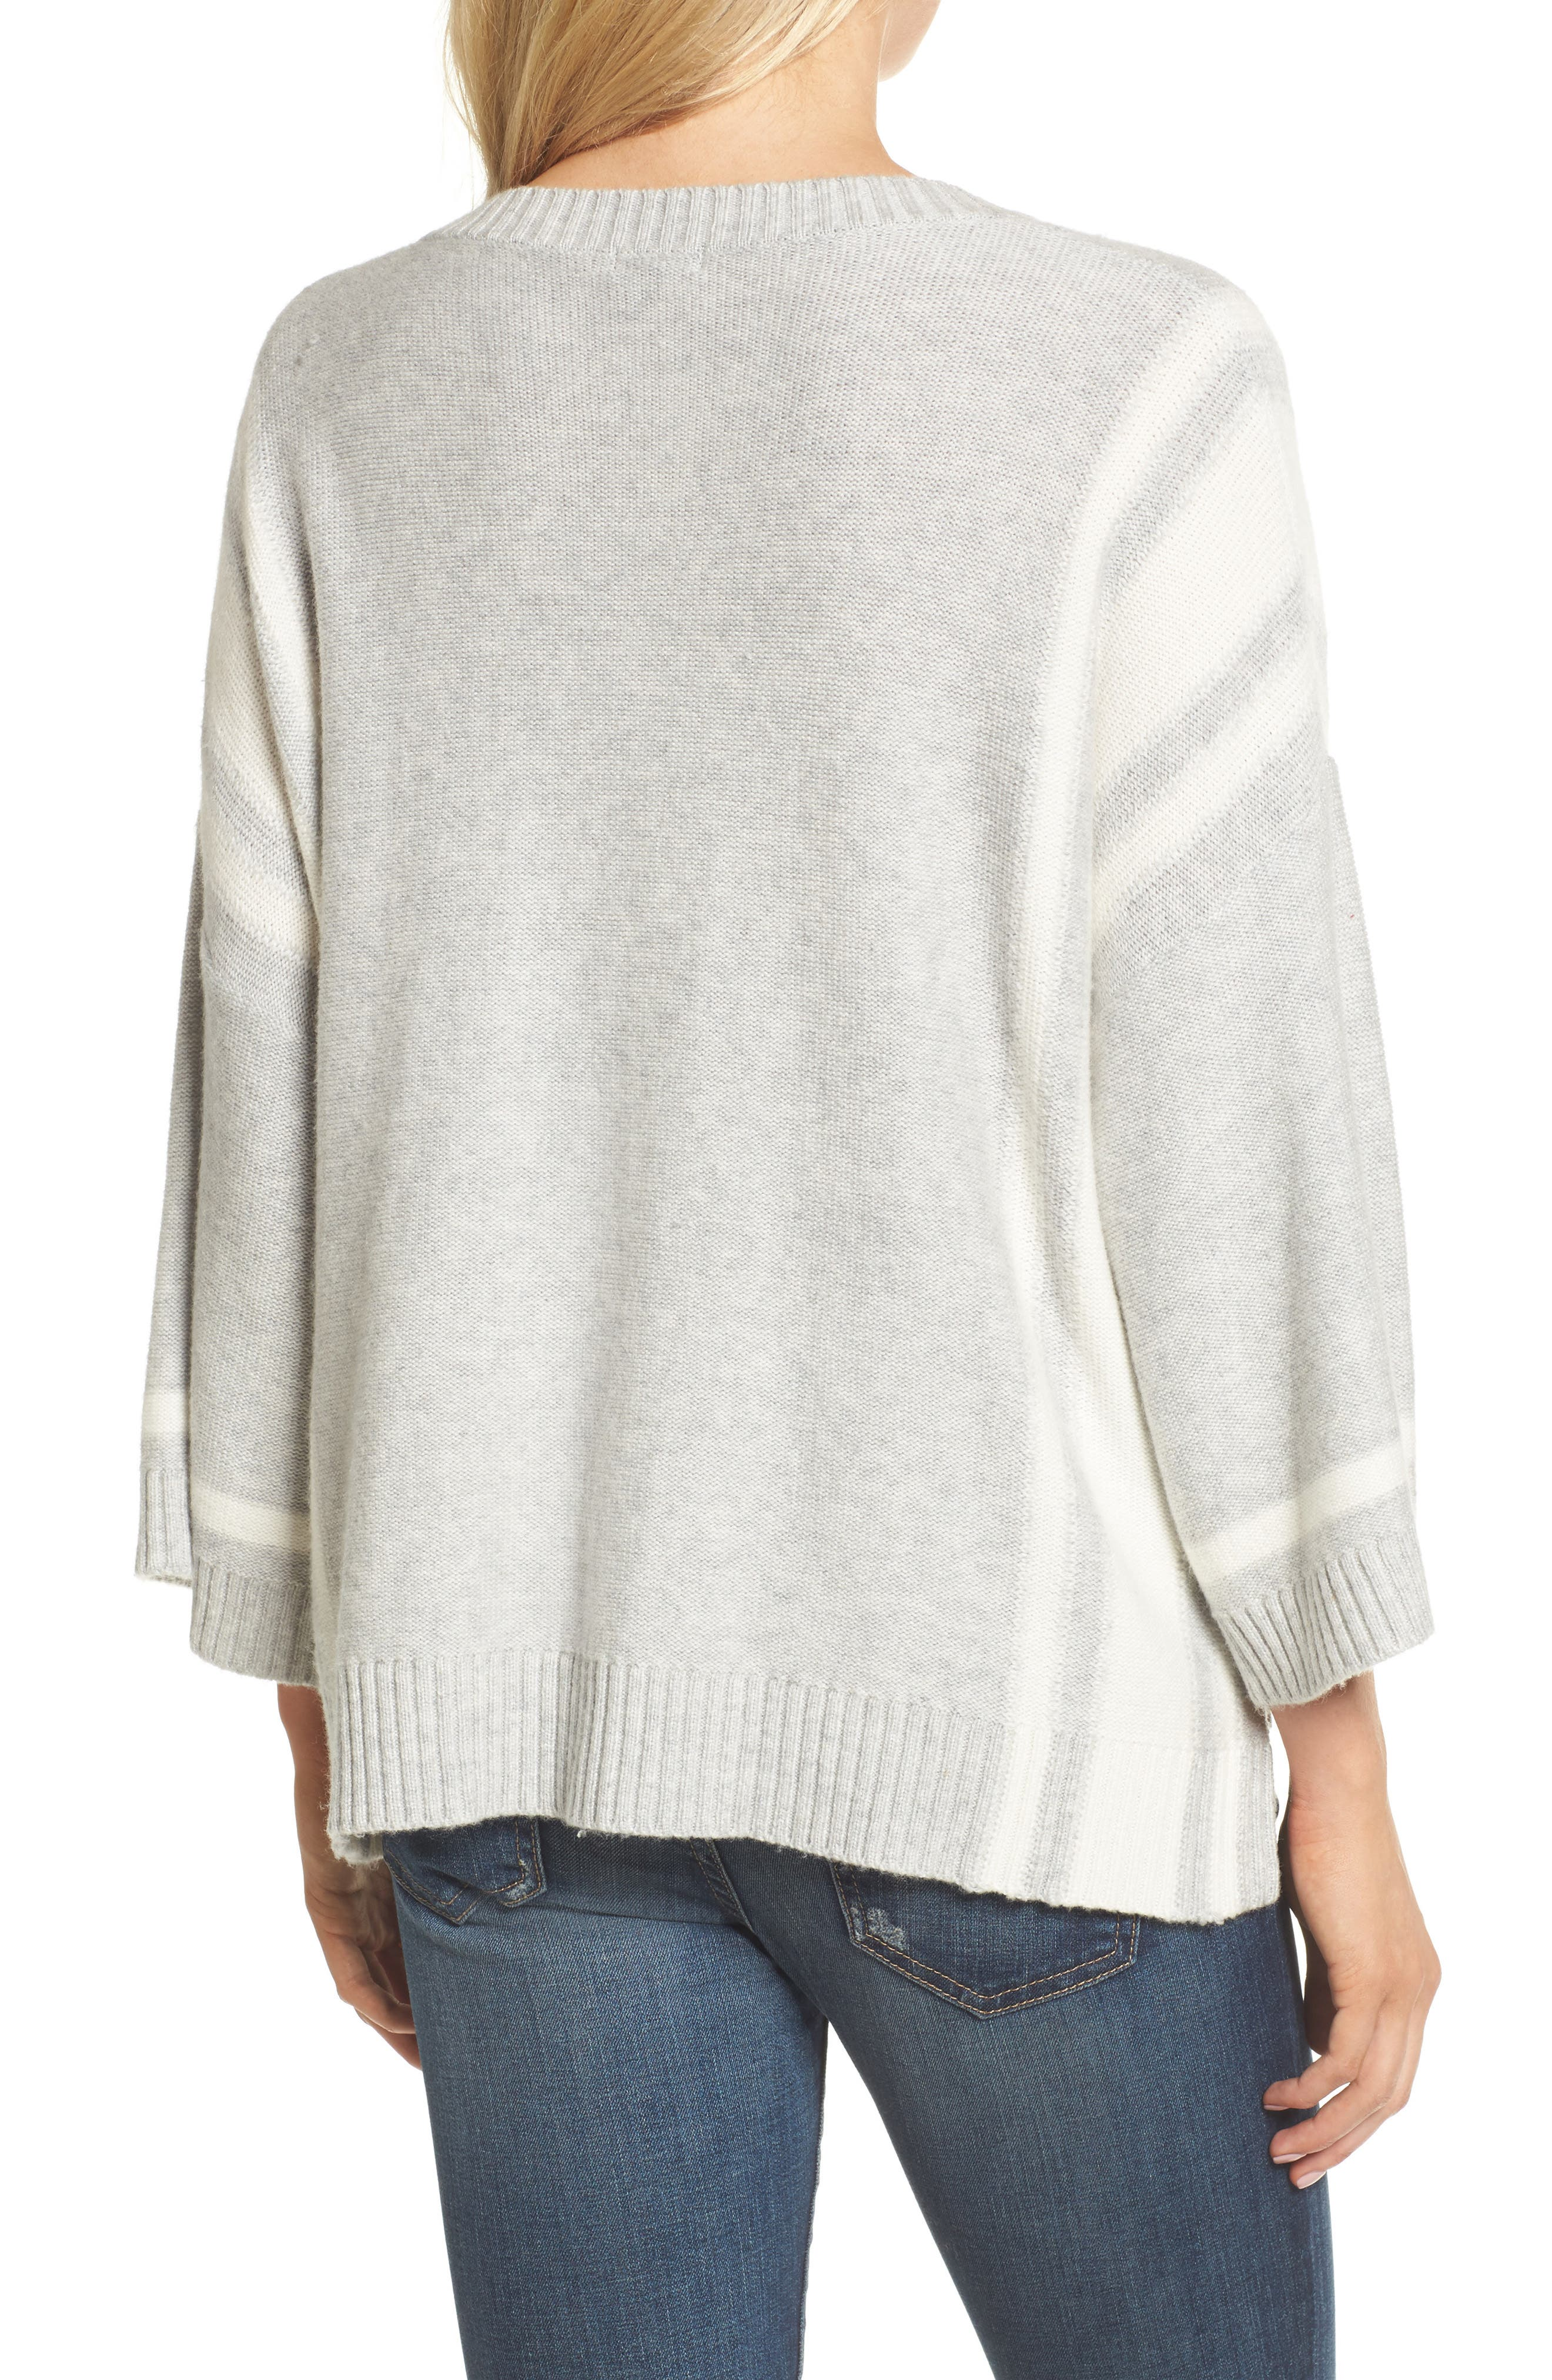 Bell Sleeve Sweater,                             Alternate thumbnail 3, color,                             Grey